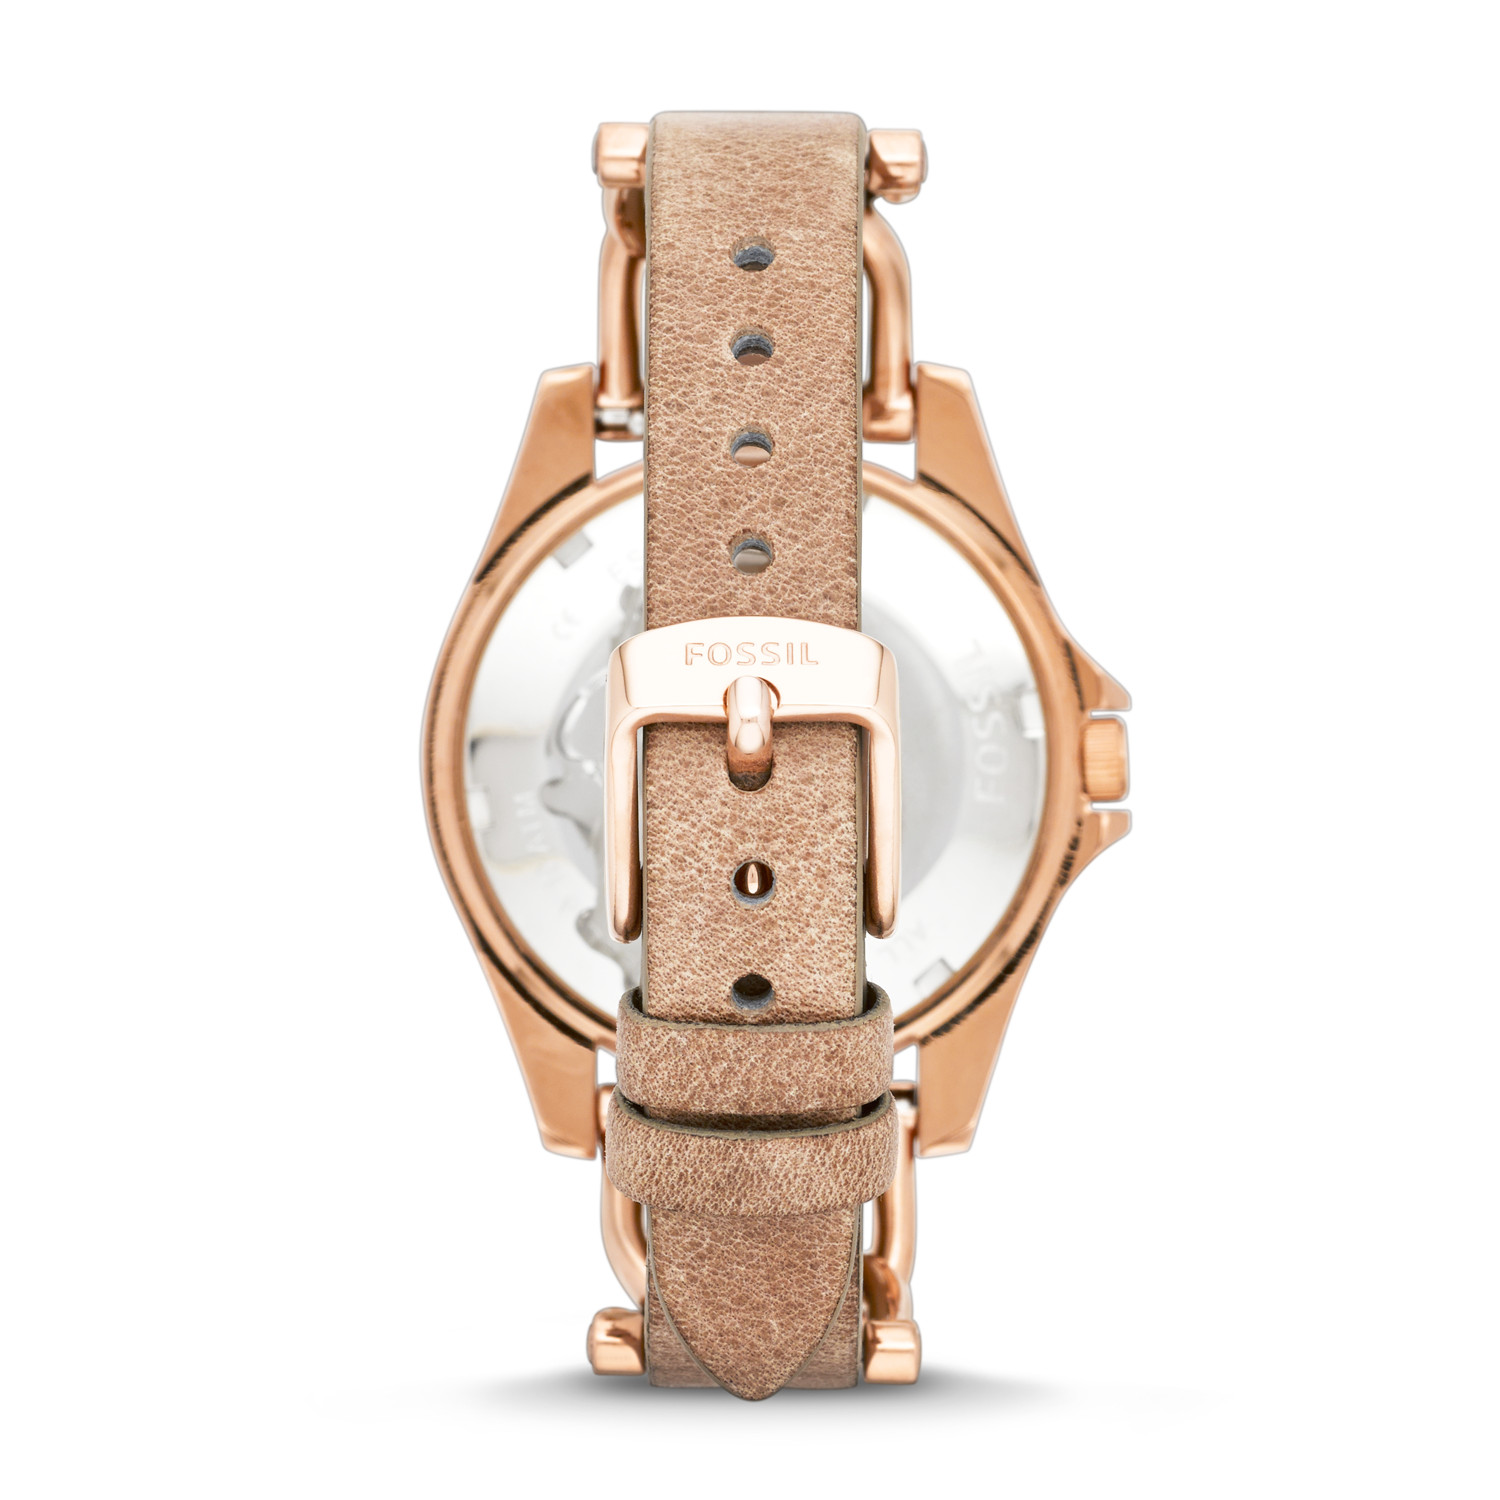 c5b4313f6f1 Riley Multifunction Rose-Tone   Sand Leather Watch - Fossil